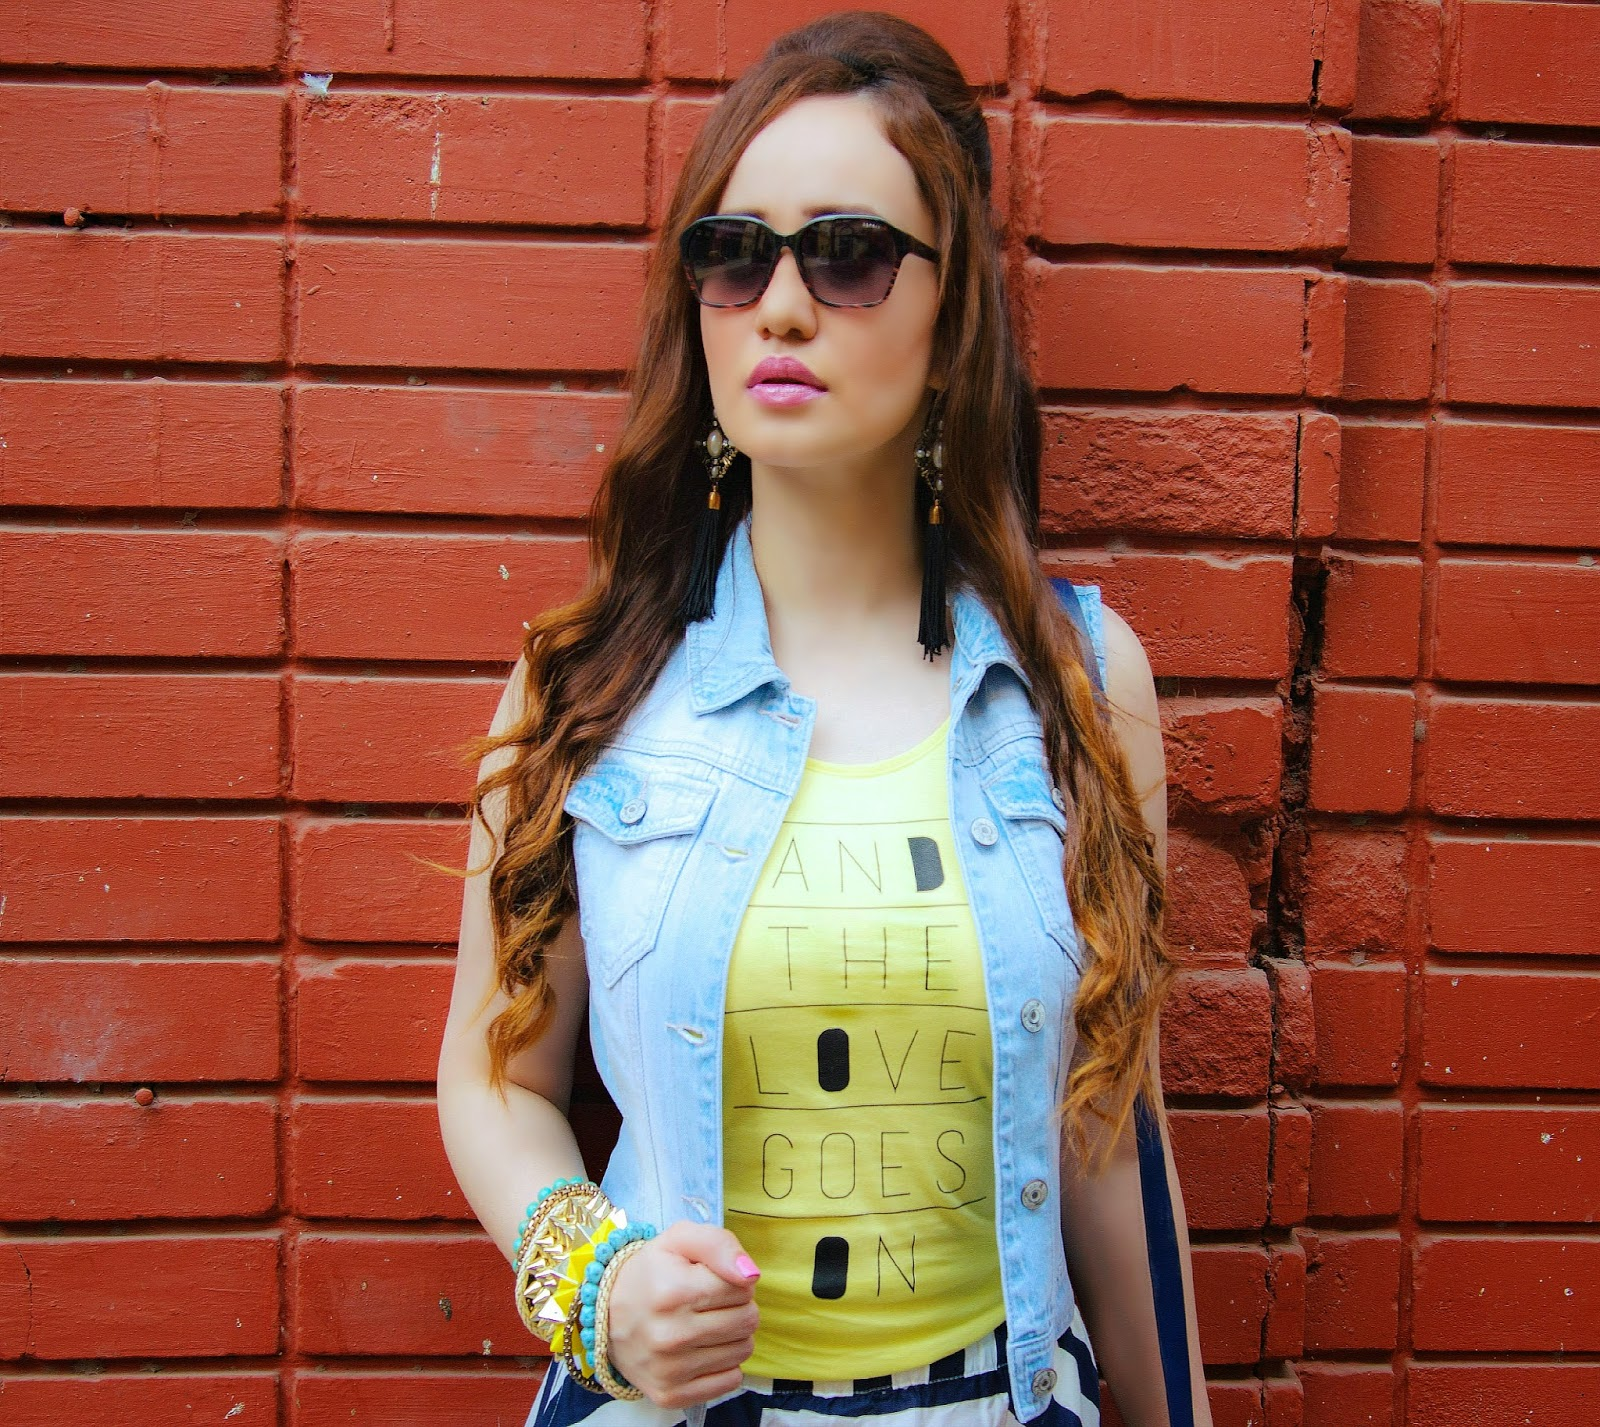 VERO MODA Denim Jacket, T-Shirt, Esprit Sunglasses